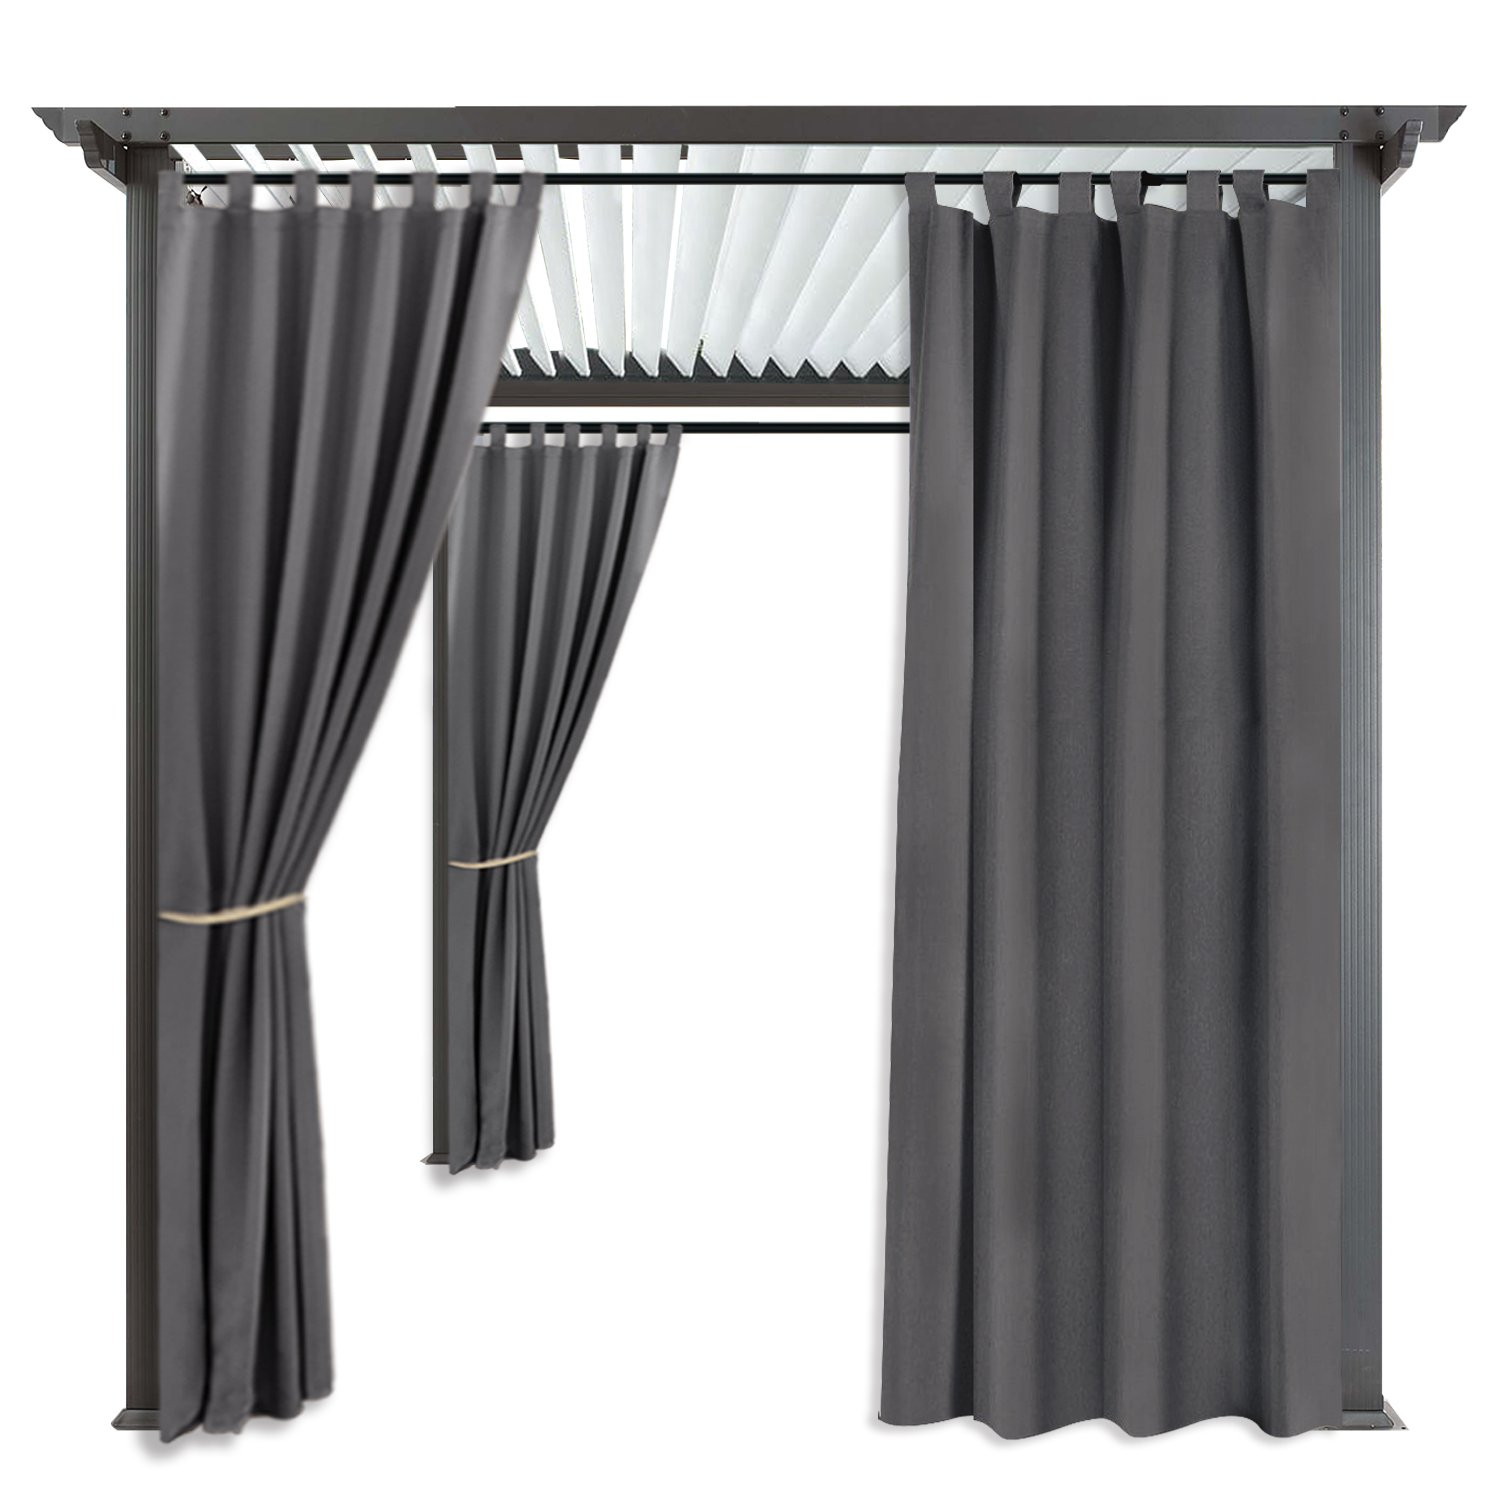 RYB HOME Balcony Curtains Outdoor - Portable Patio Blackout Shades Window Treatment Tab Top Waterproof Windproof Outdoor Indoor Privacy Curtain Drape, 1 Panel, Wide 52 by Long 84 Inch, Grey